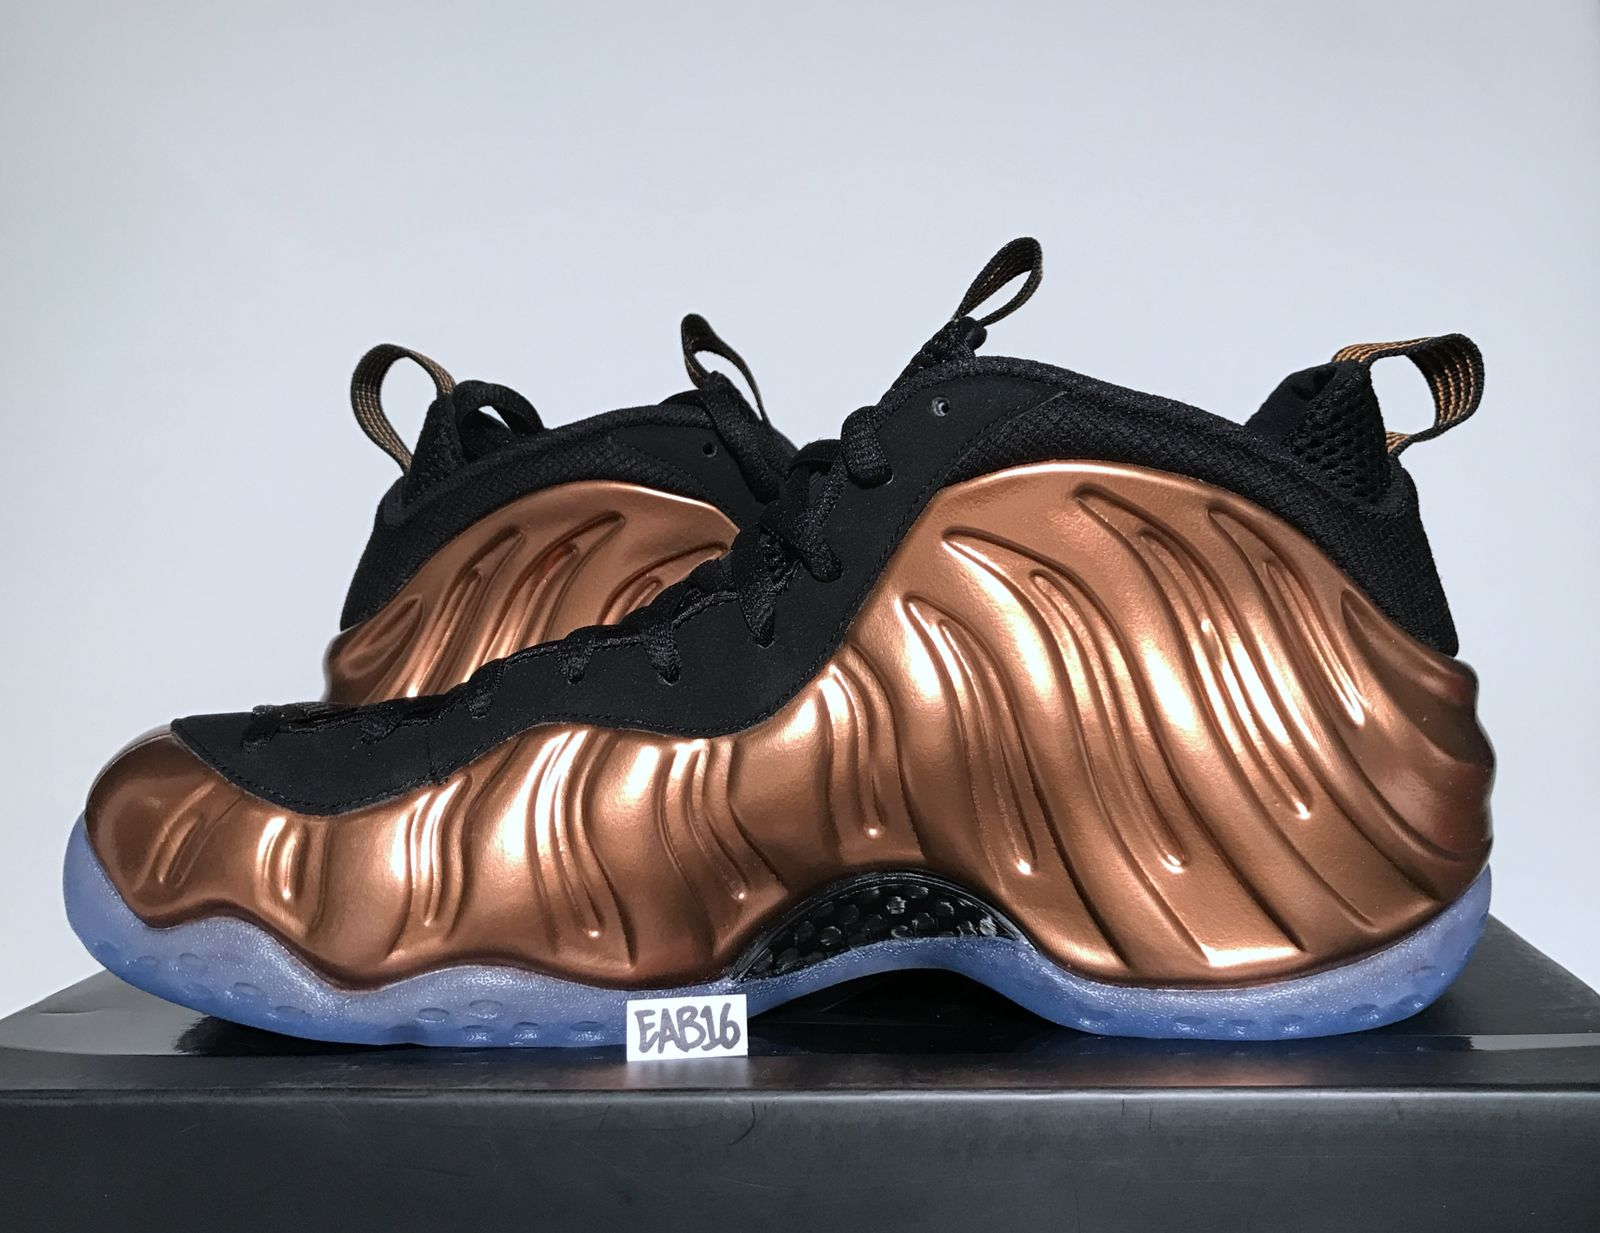 online retailer f81e5 73f0a The Air Foamposite One Copper 314996-007 Is Available Early ...